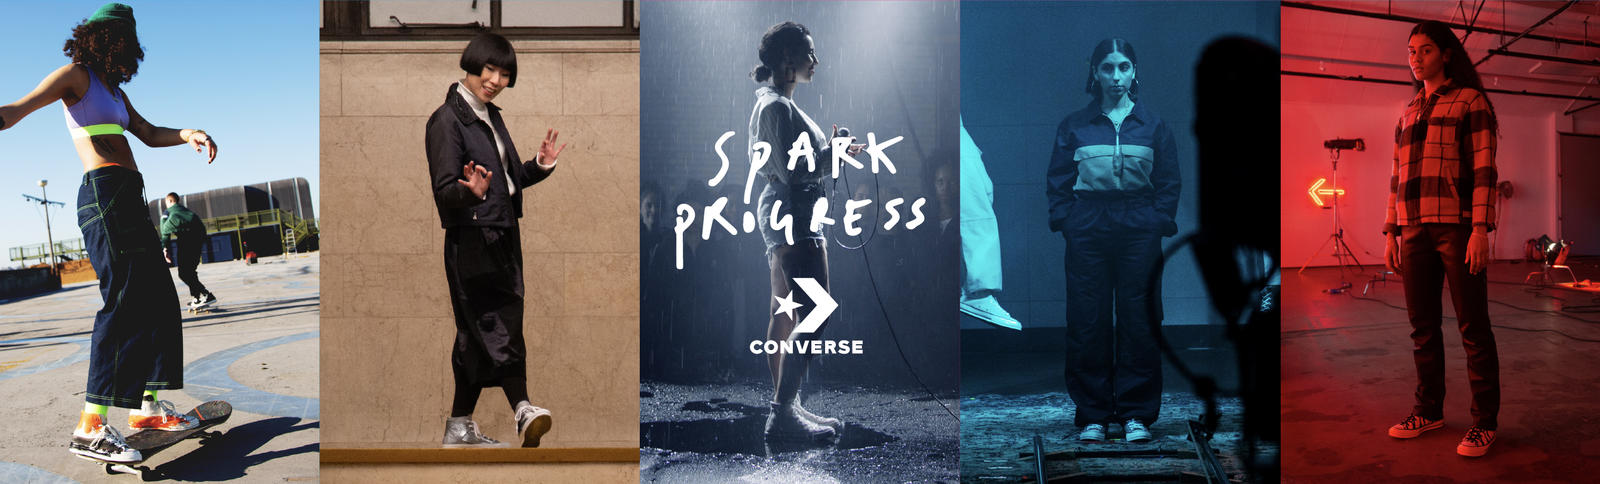 Converse Announces Spark Progress Program to Support London's Emerging Creative Talent  0